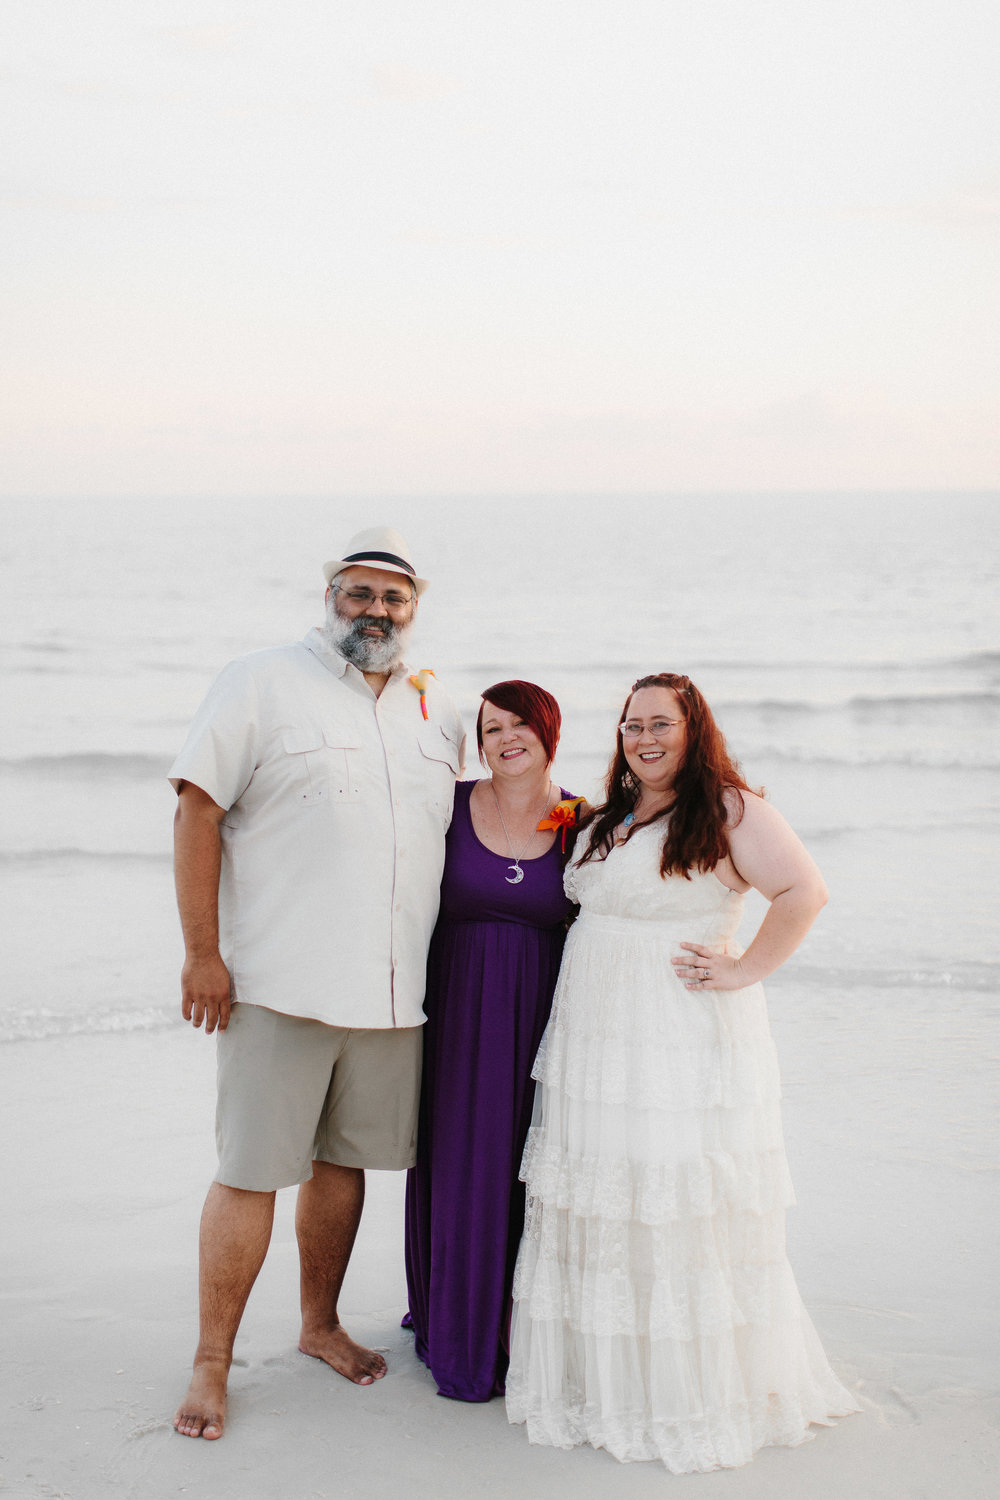 destin_sunset_beach_elopement_intimate_wedding_photographer_florida_documentary_1338.jpg